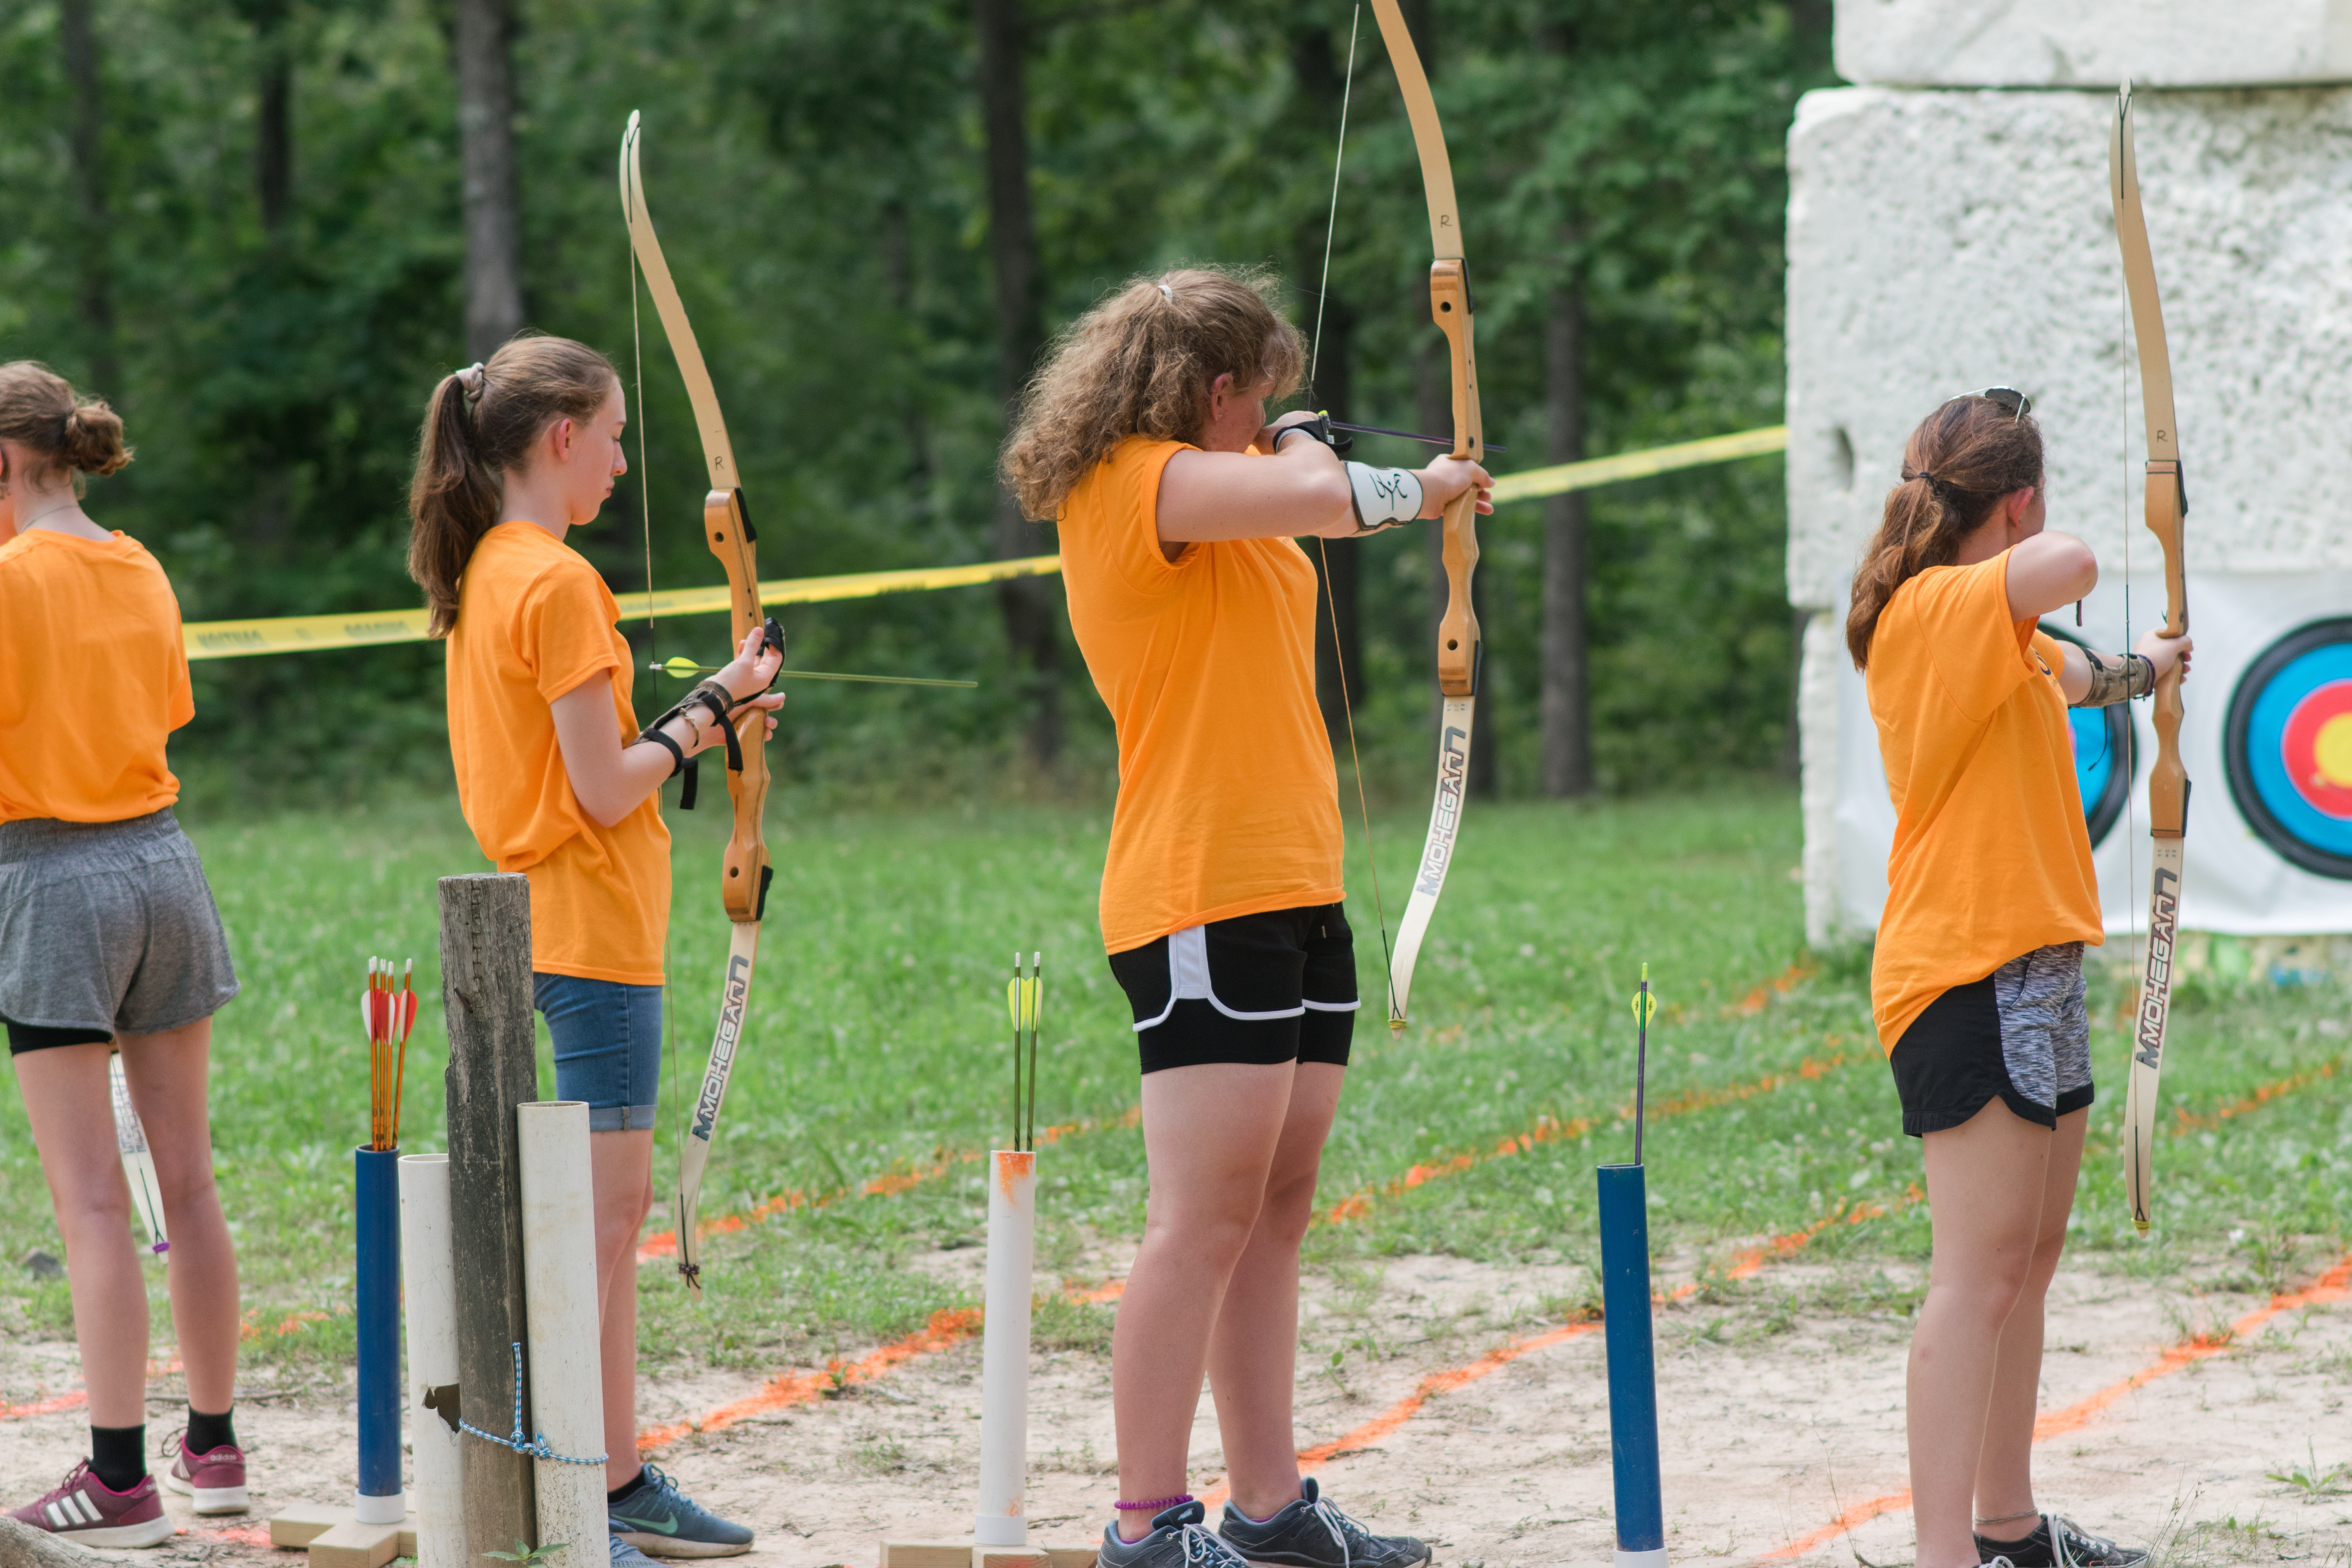 Archery at camp Pinecrest.